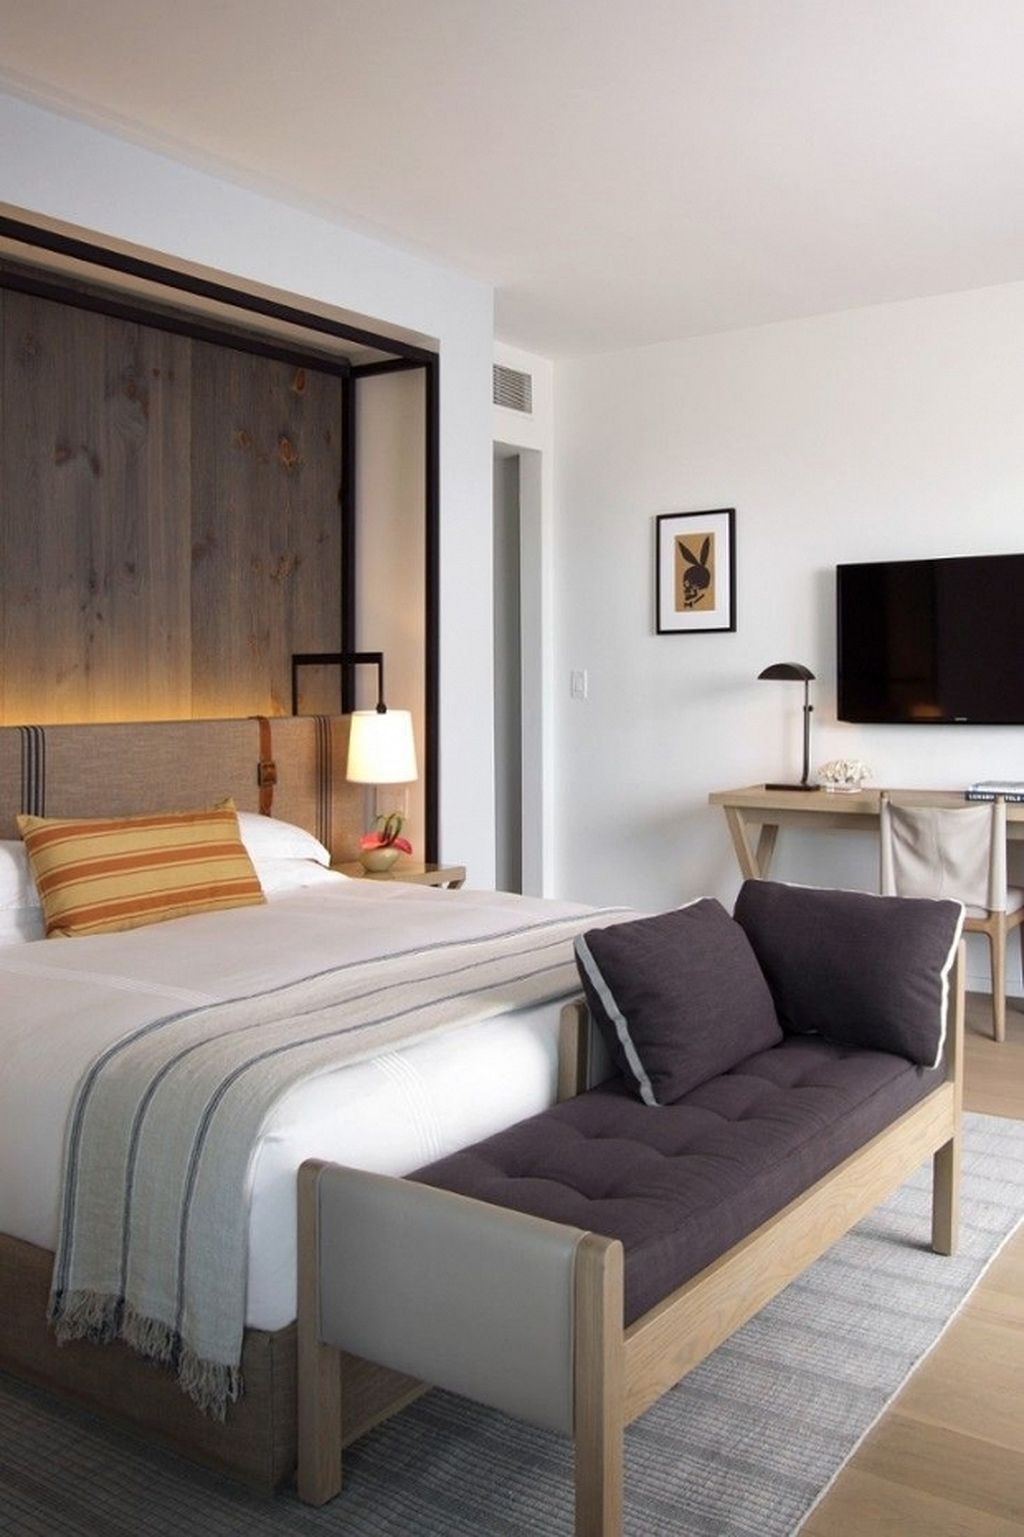 Cool 60+ Amazing Hotel Style Bedroom Designs To Get Inspired From ://homegardenmagz.com/60-amazing-hotel-style-bedroom-designs -to-get-inspired-from/ & 60+ Amazing Hotel Style Bedroom Designs To Get Inspired From ...